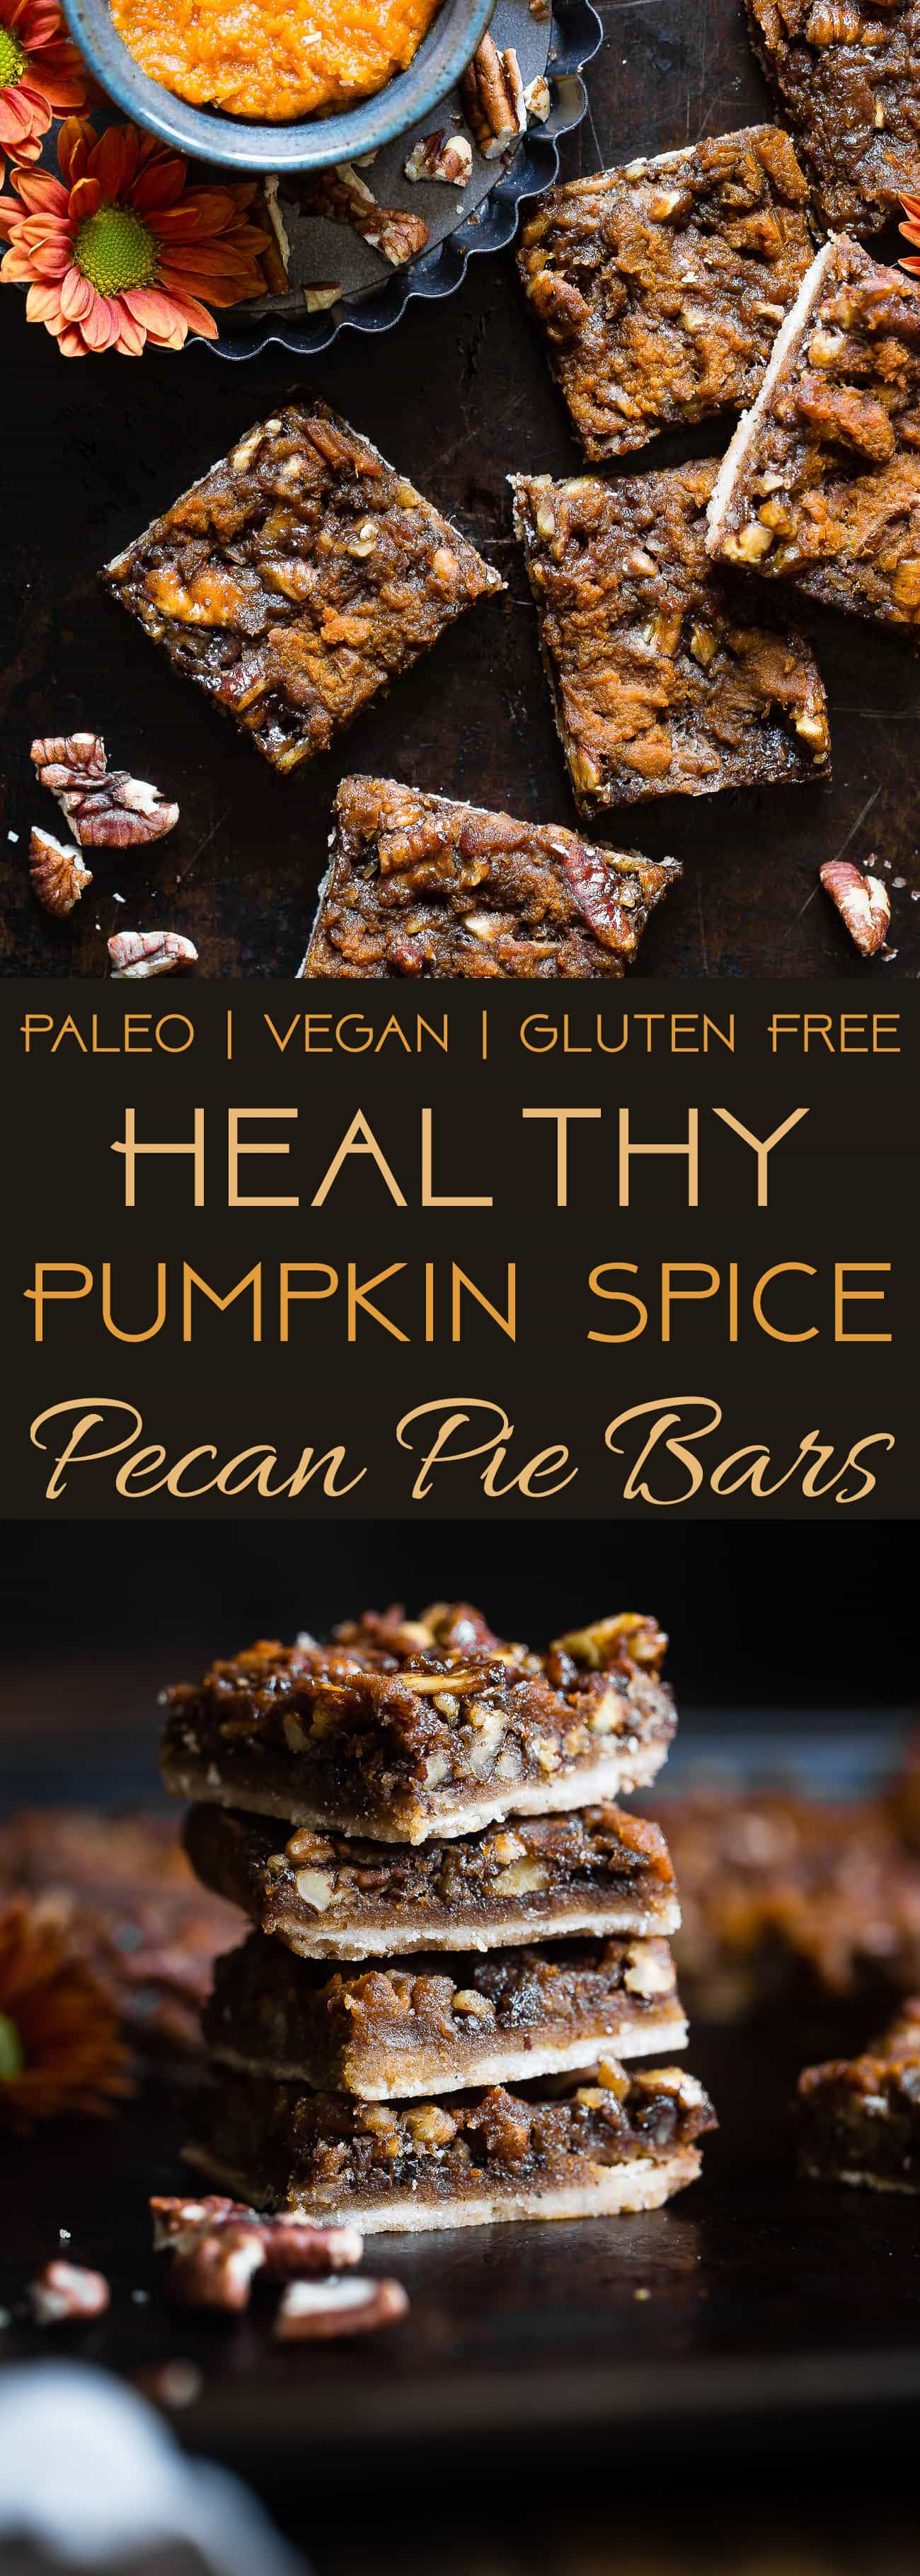 Pumpkin Spice Vegan Pecan Pie Bars -These easy, healthy pecan pie bars are only 8 ingredients and have a pumpkin spice spin! A gluten/grain/dairy/egg free dessert for Thanksgiving that's paleo friendly! | Foodfaithfitness.com | @FoodFaithFit | easy pecan pie bars. pecan pie bars no corn syrup. best pecan pie bars. healthy pecan pie bars. paleo pecan pie bars. gluten free pecan pie bars. pumpkin pecan pie bars. maple pecan pie bars. chewy pecan pie bars.